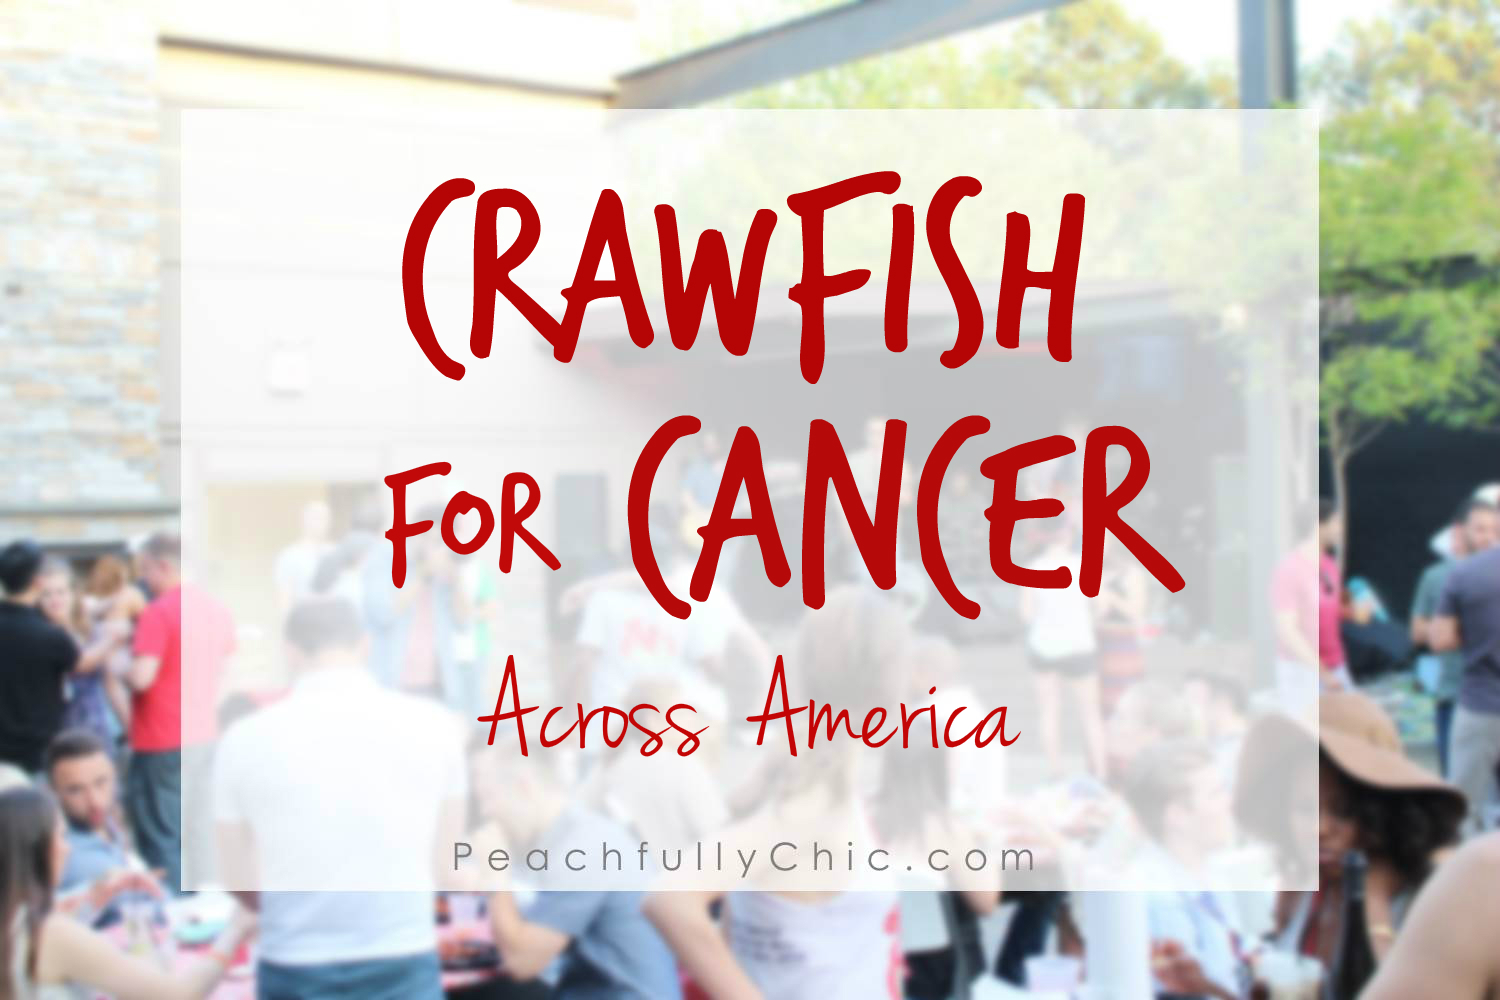 crawfish-for-cancer-atlanta-event-main-1